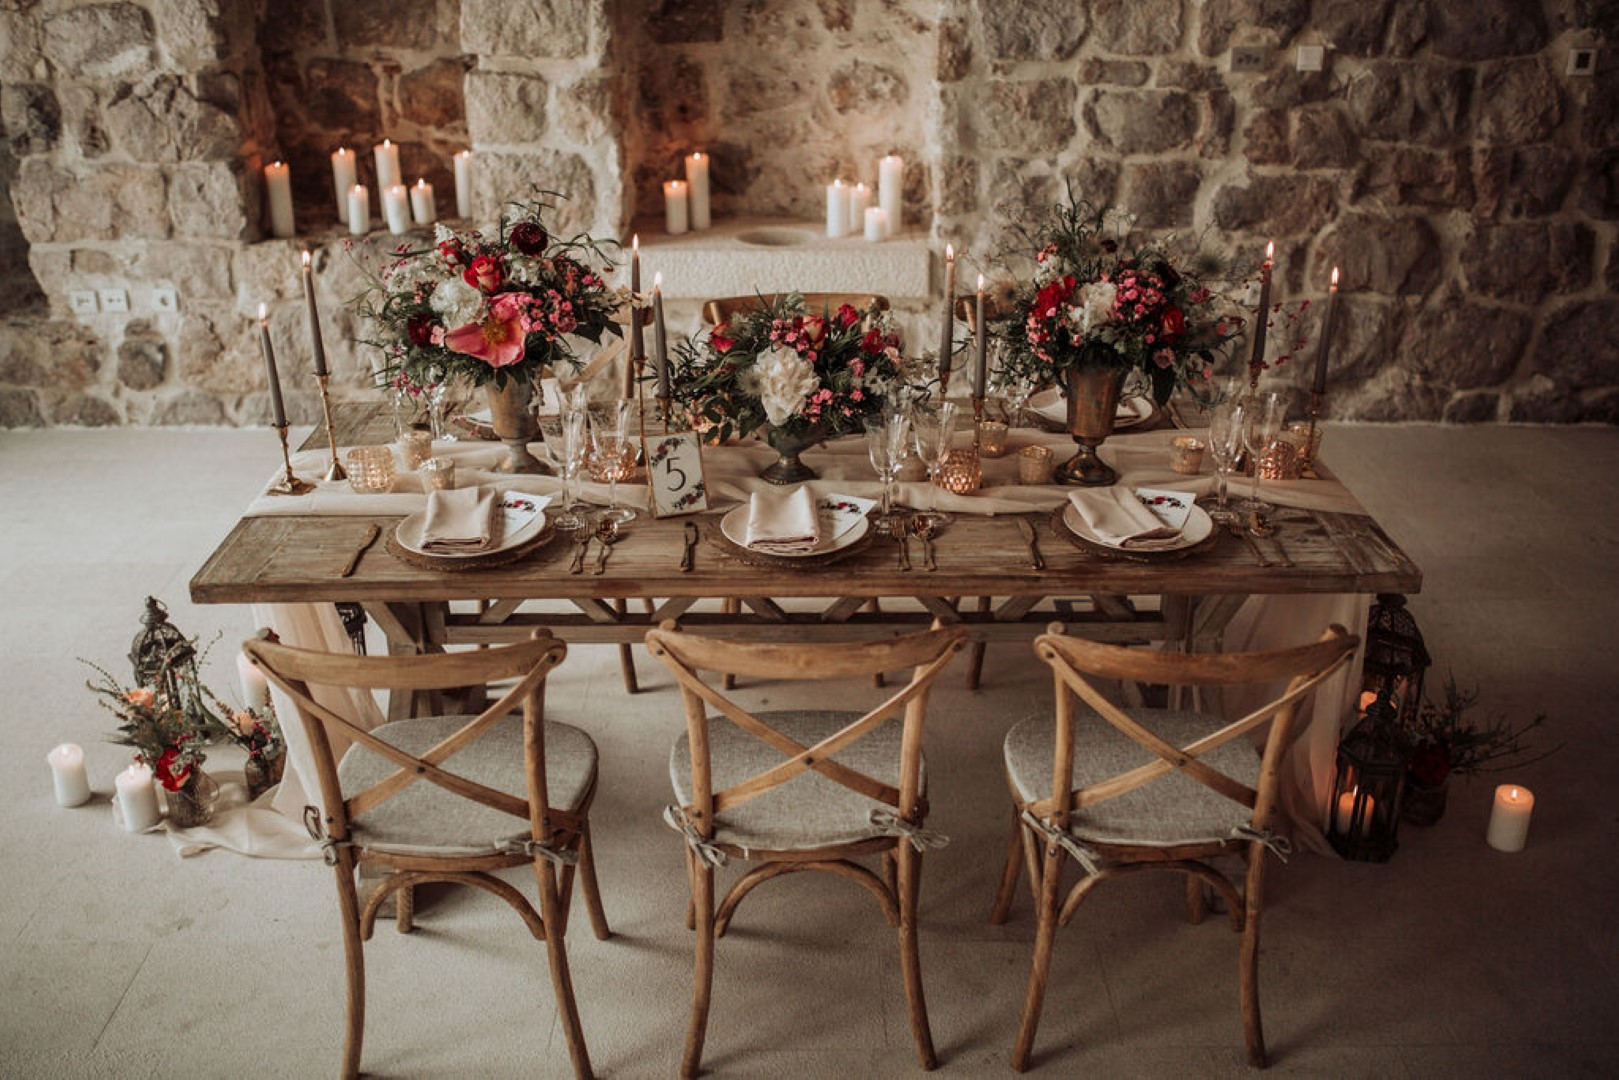 This image is a close up of a reception set up. The details are gold and rose gold. The runner on the wooden table and the main plate are both a very light shade of pink.